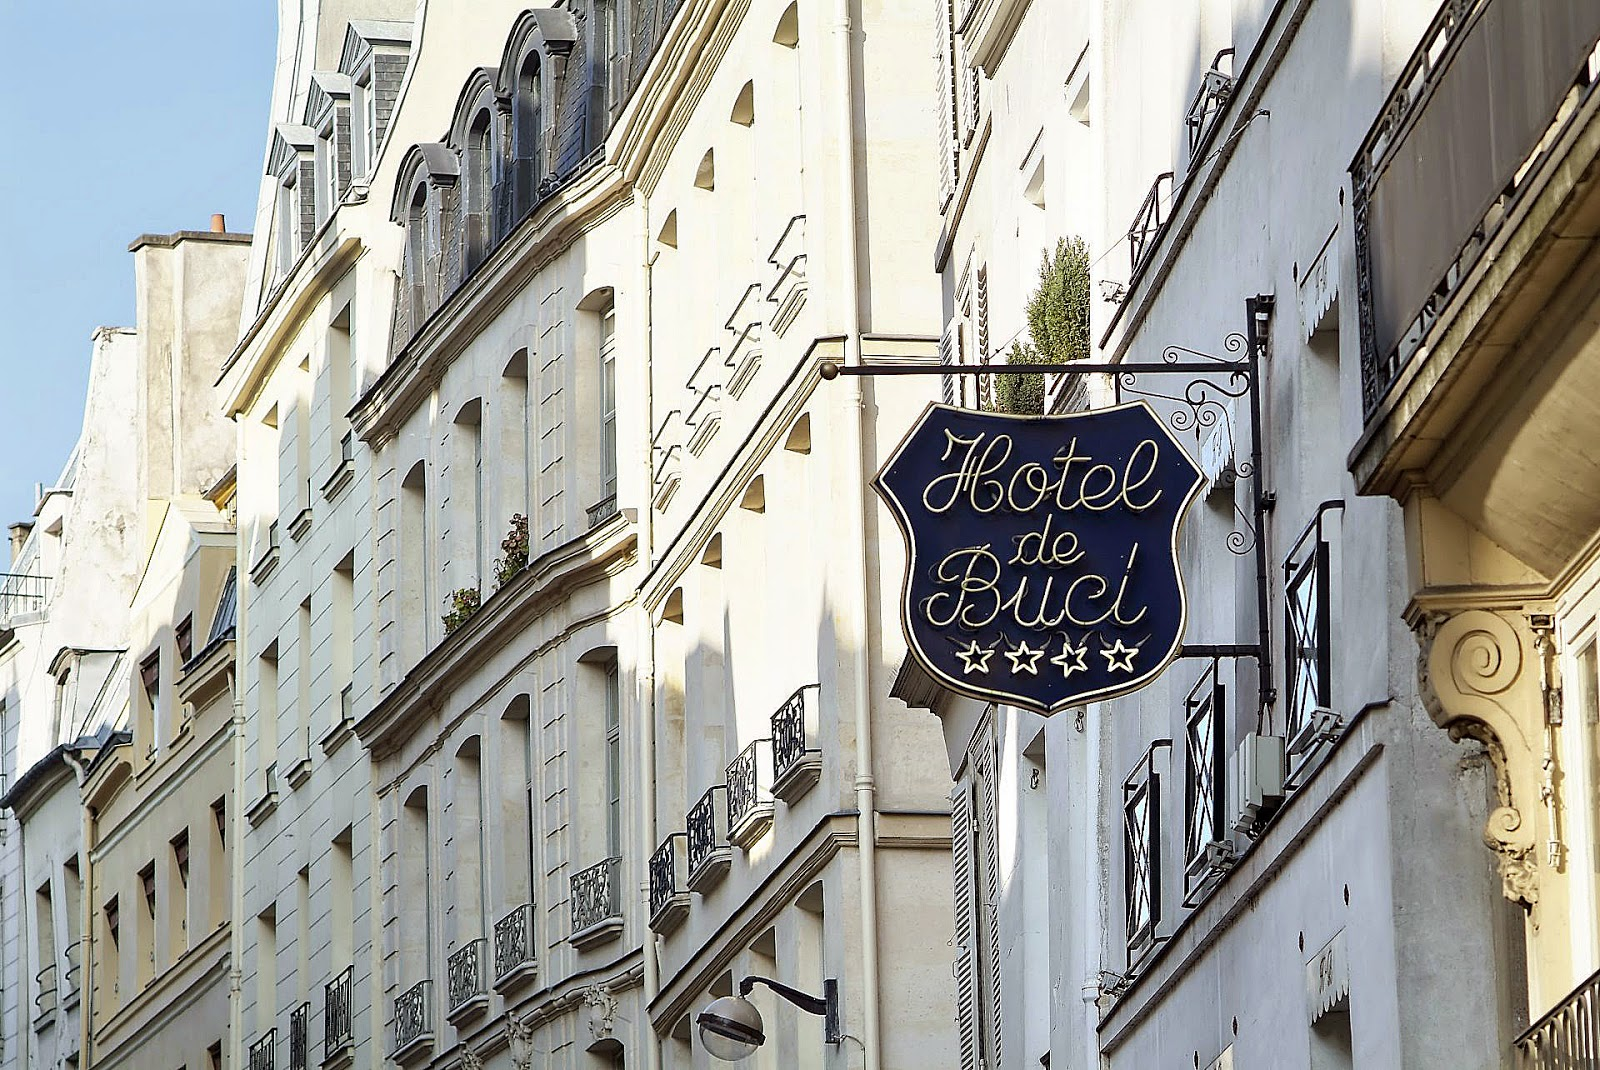 https://www.theaussieflashpacker.com/2015/03/luxury-hotel-review-hotel-de-buci-paris.html